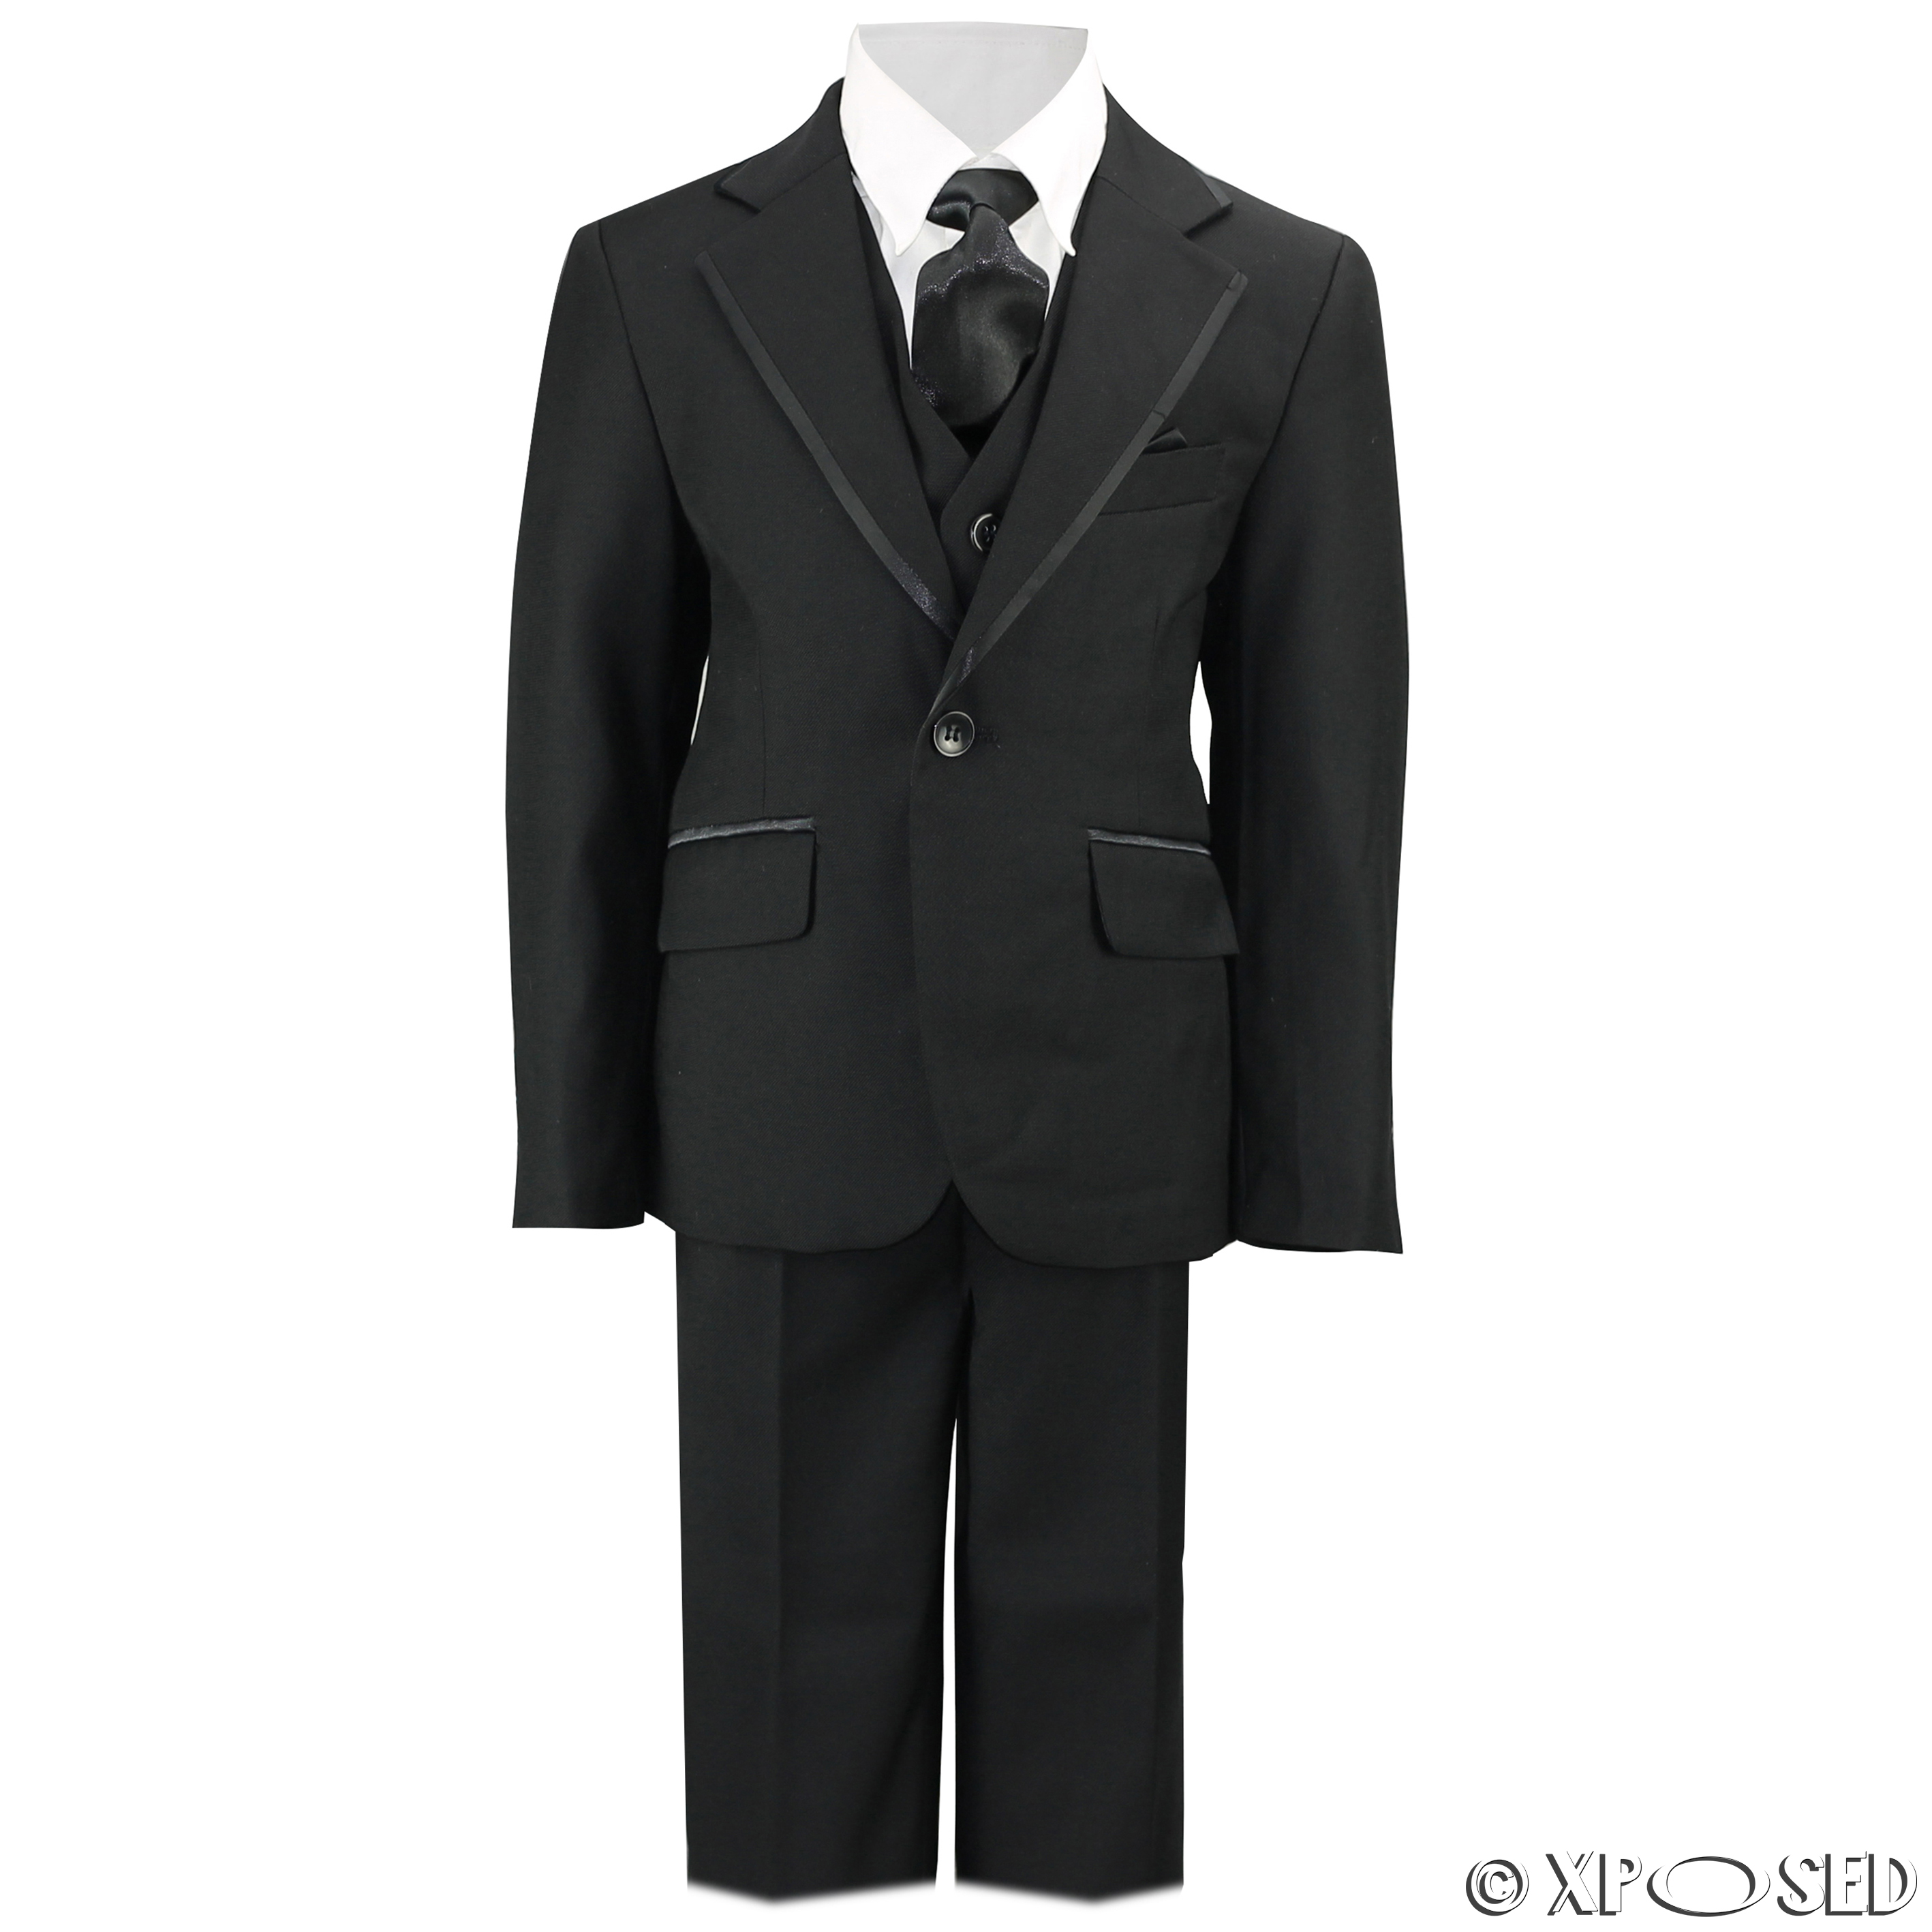 3 piece set includes jacket, vest and pants. Shirt, ties and hanky not included. Shirt, ties and hanky not included. Yanlu Boy's Tuxedos Toddler Formal Suits Set Kids Blue Black Slim Fit Suit Weddings.